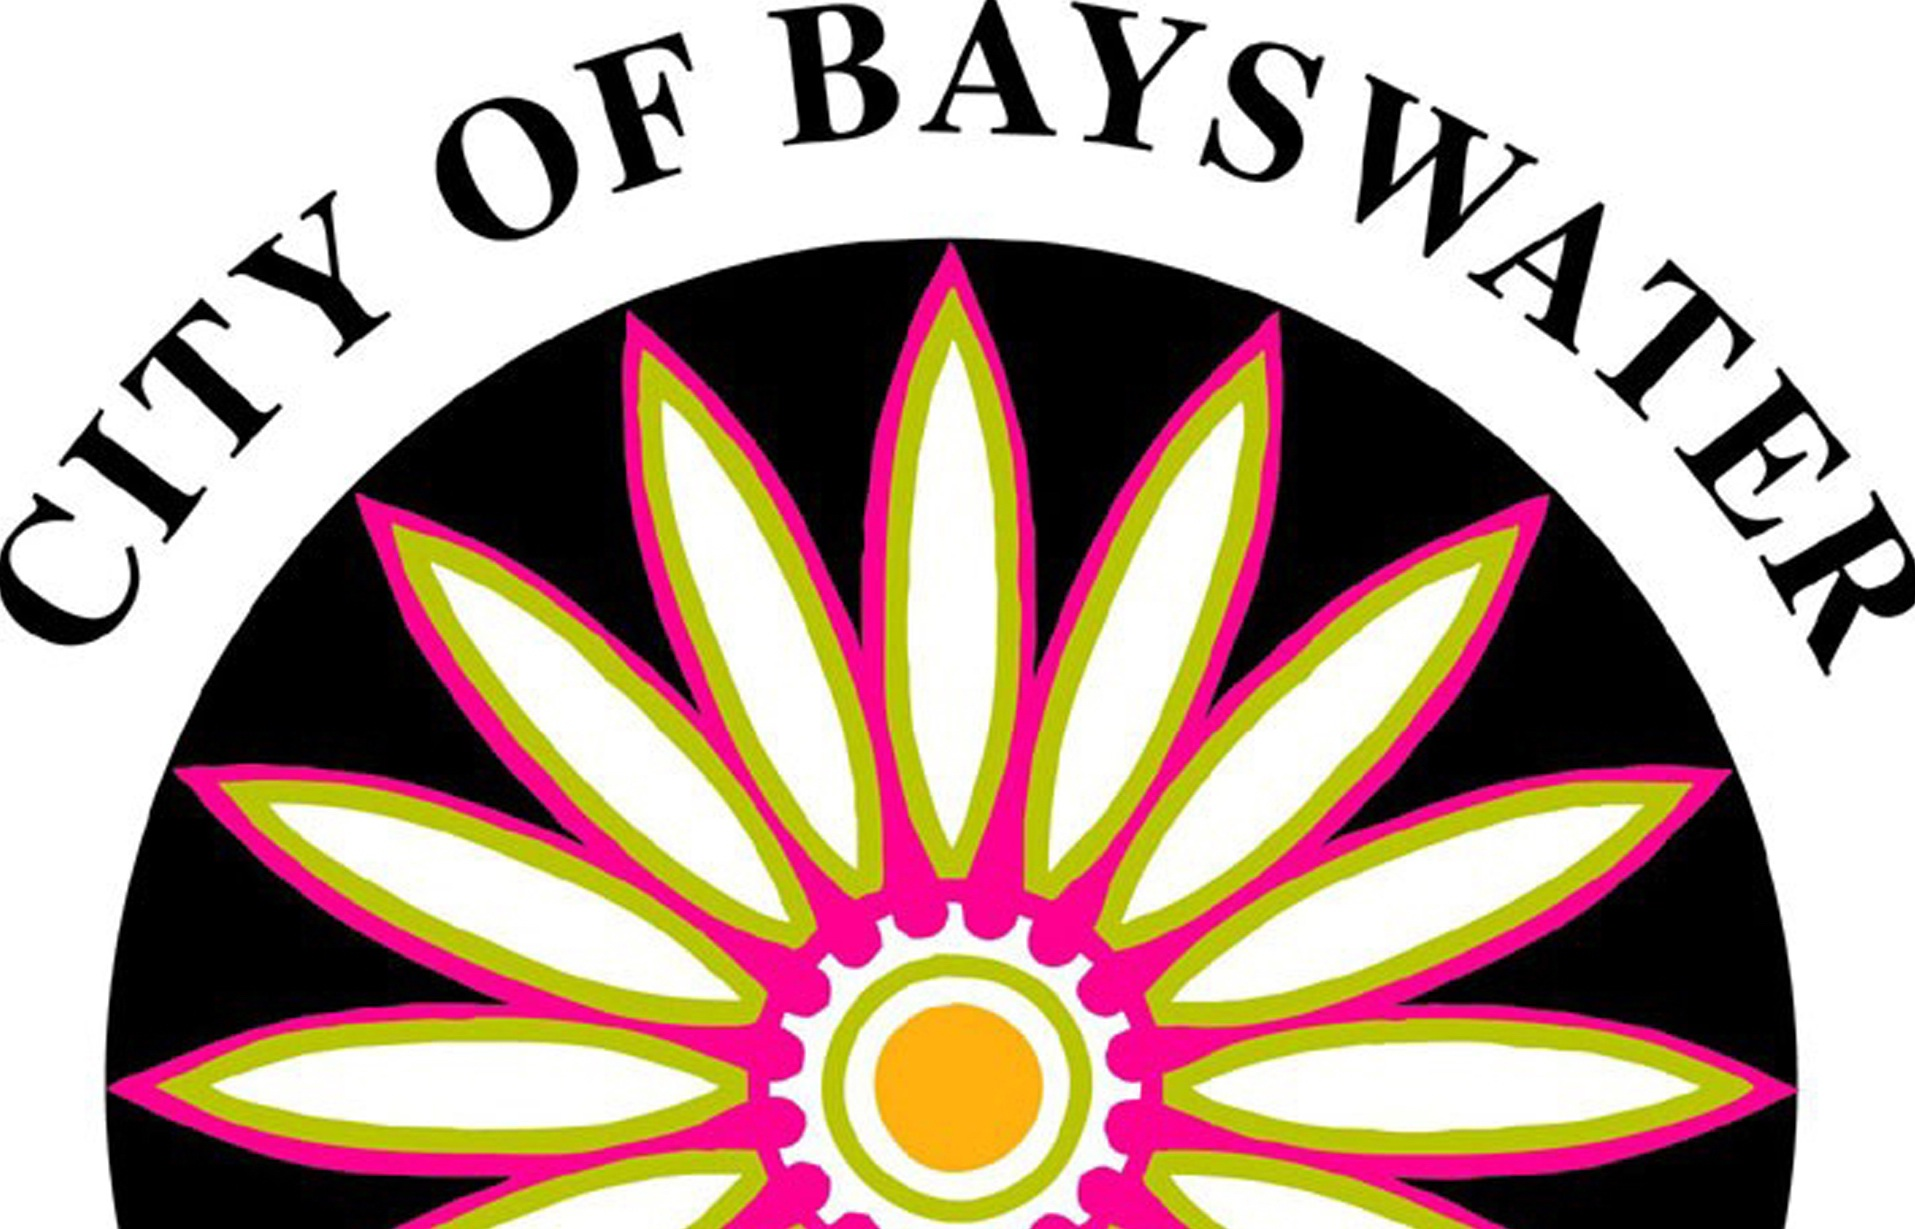 City of Bayswater residents rate City's performance as satisfactory